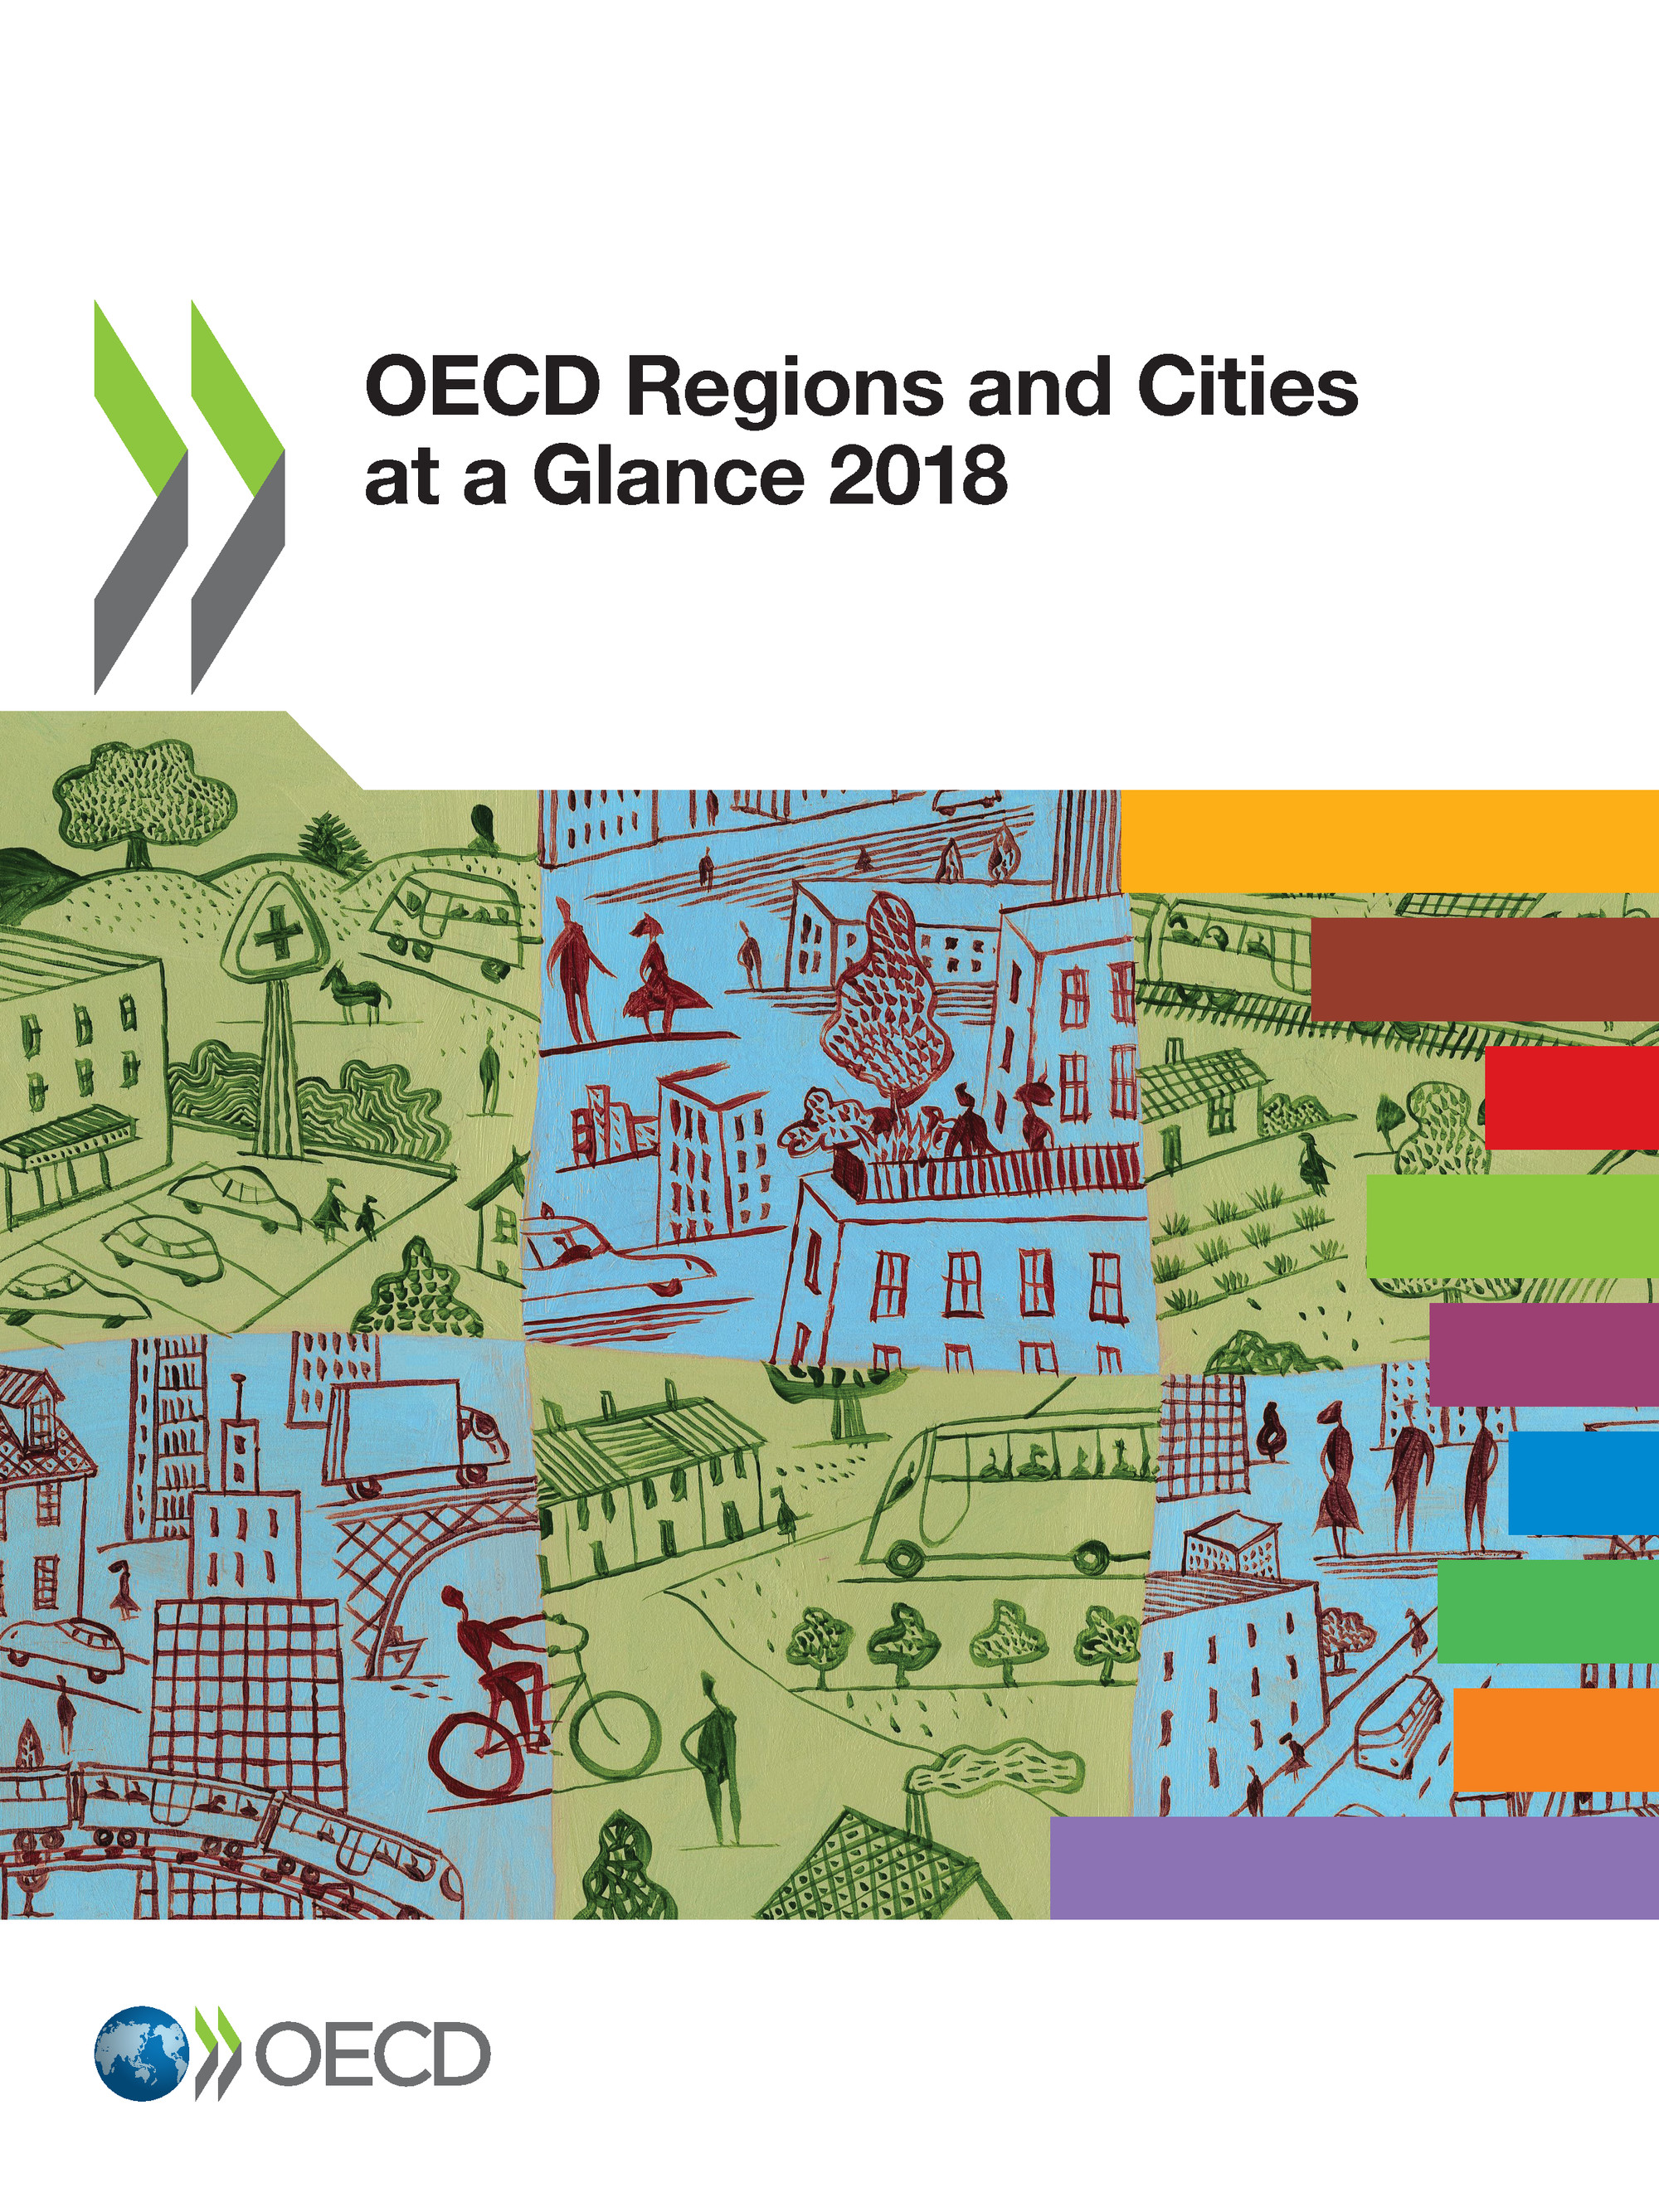 OECD Regions and Cities at a Glance 2018 De  Collectif - OCDE / OECD